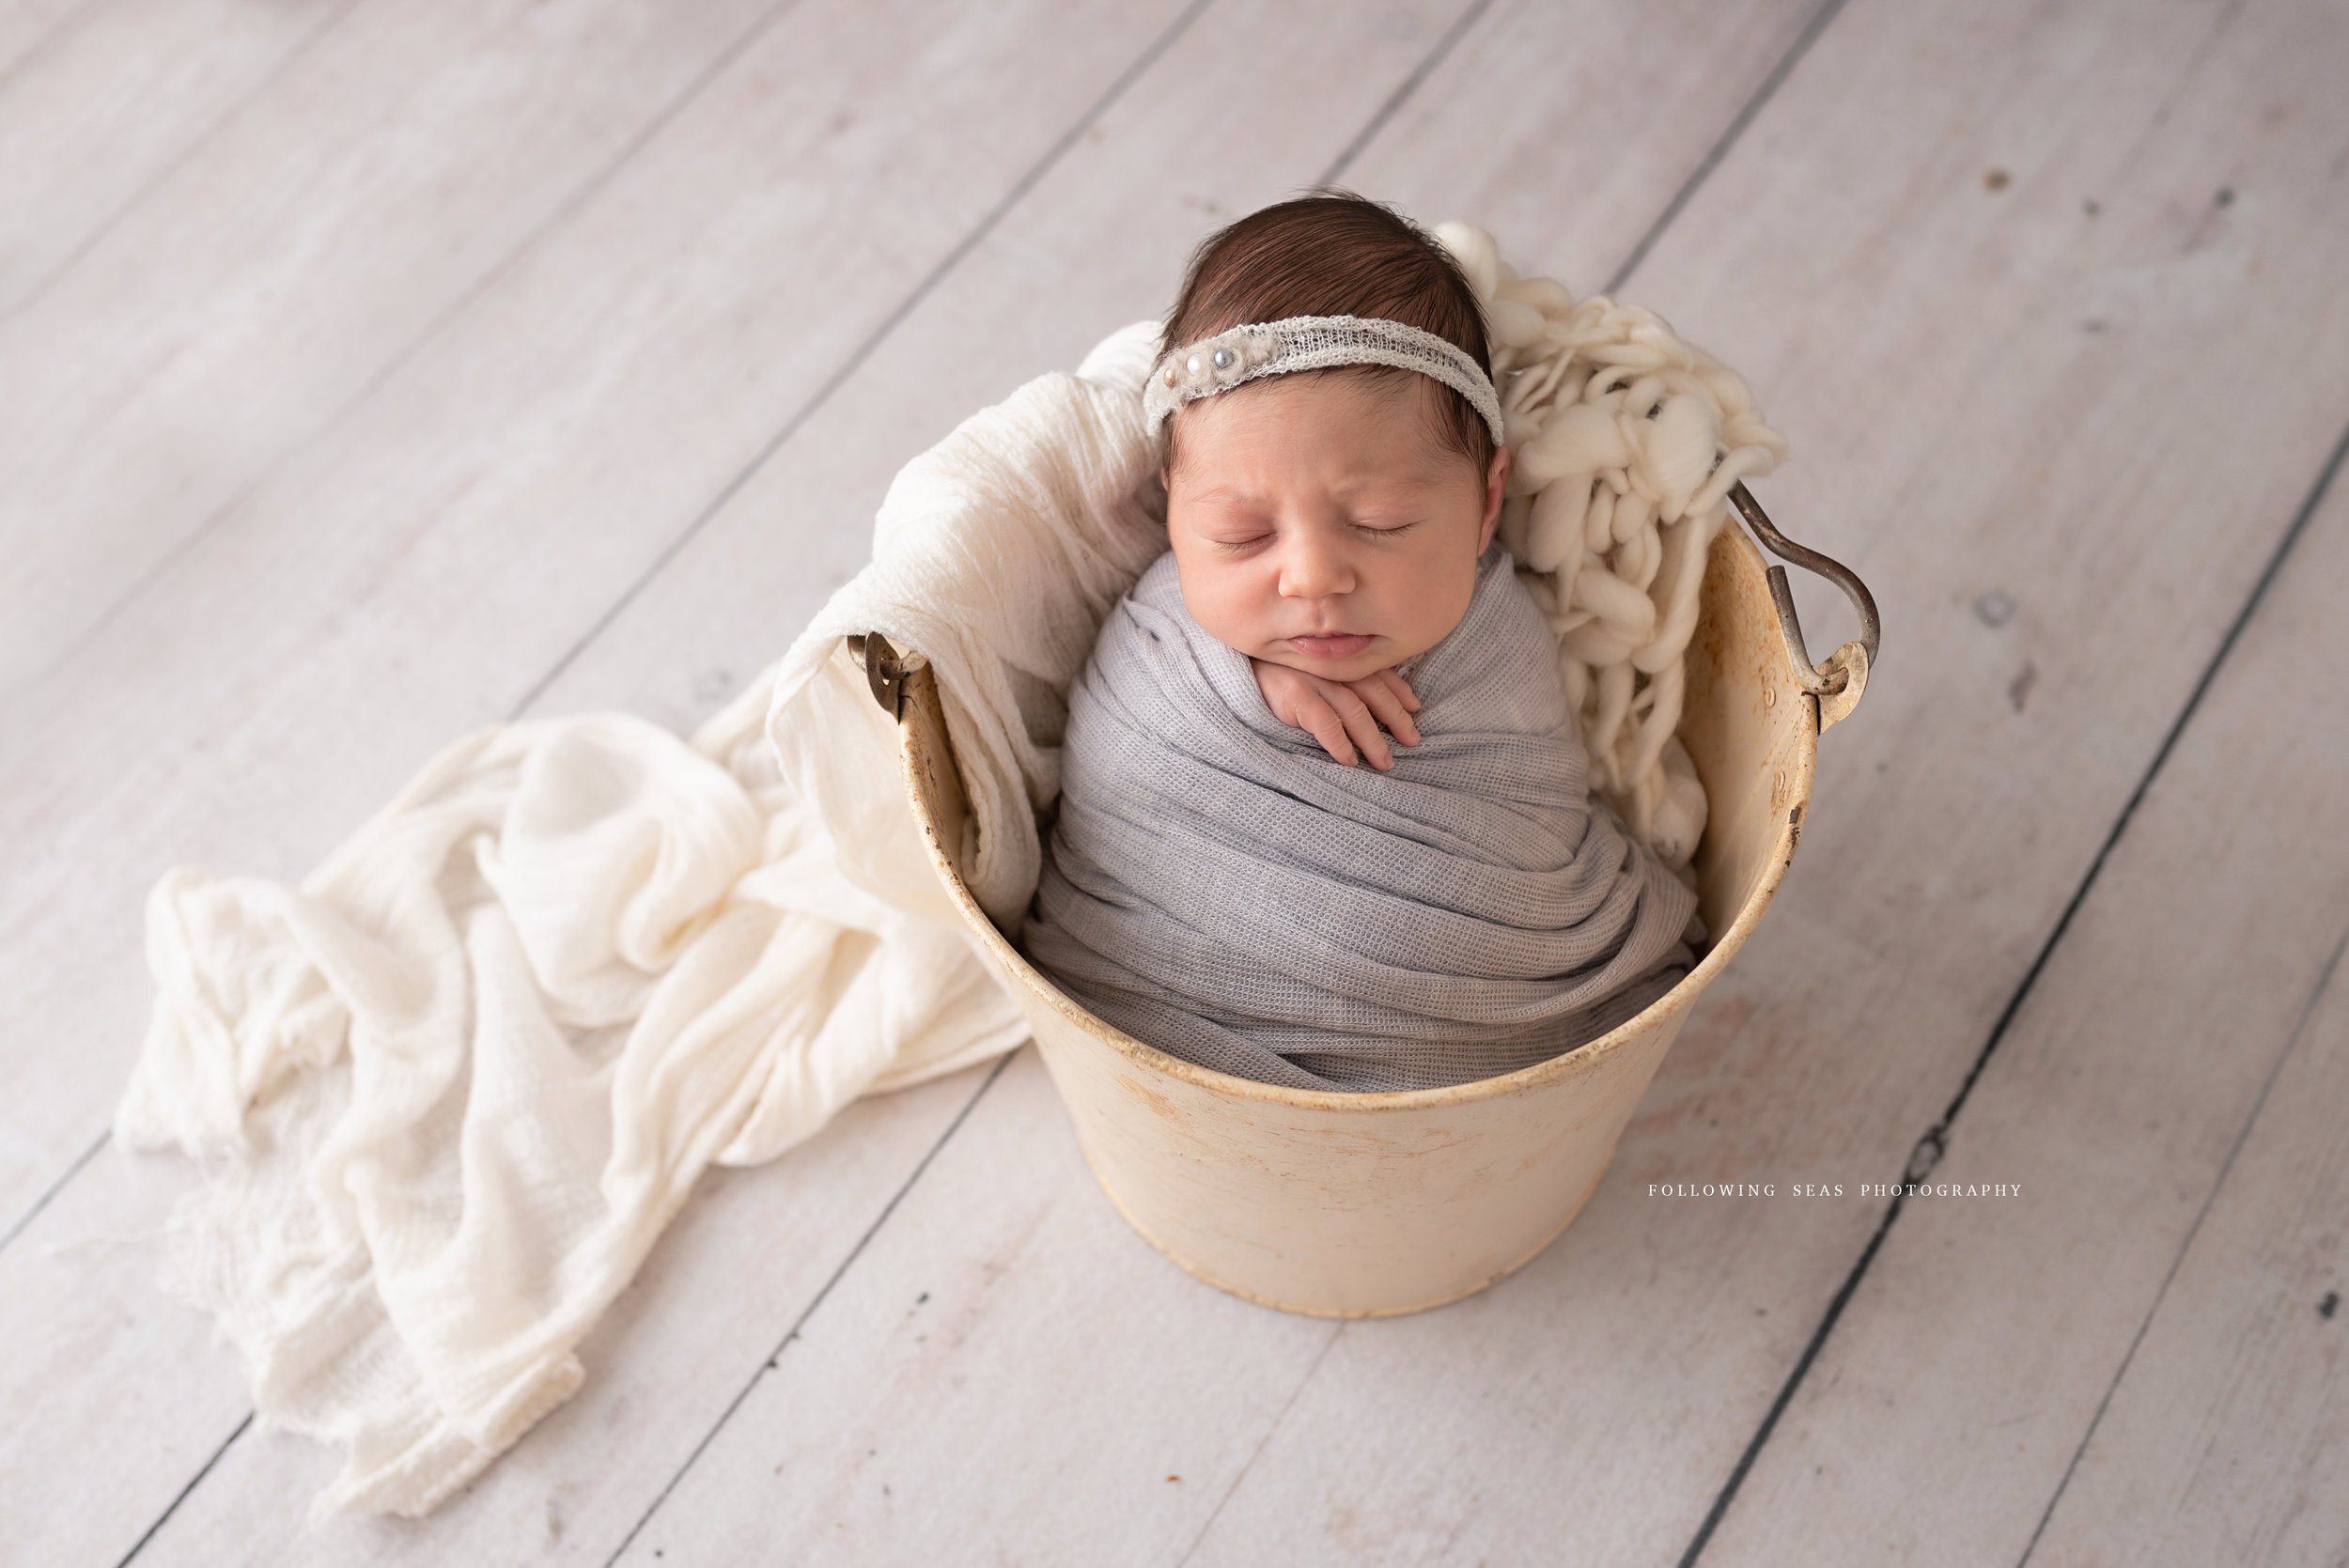 Charleston-Newborn-Photographer-Following-Seas-Photography-FSP_7086.jpg